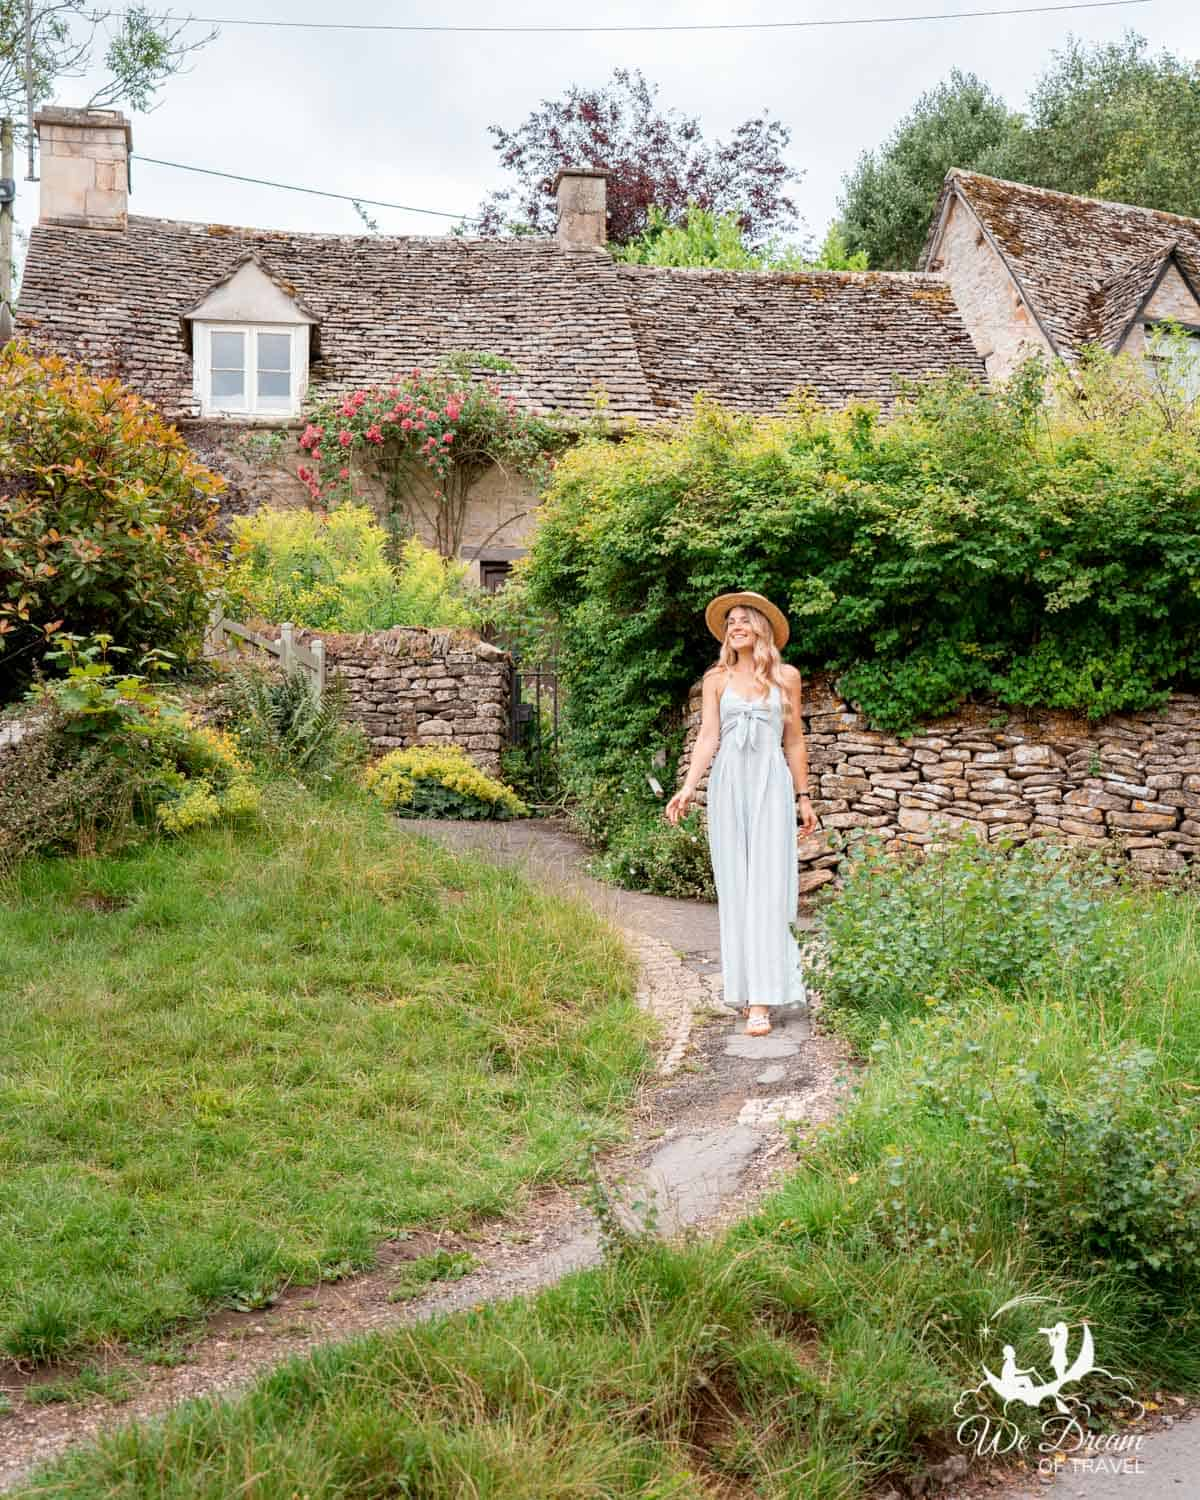 A girl in front of a stone cottage in the beautiful Bibury village Cotswolds